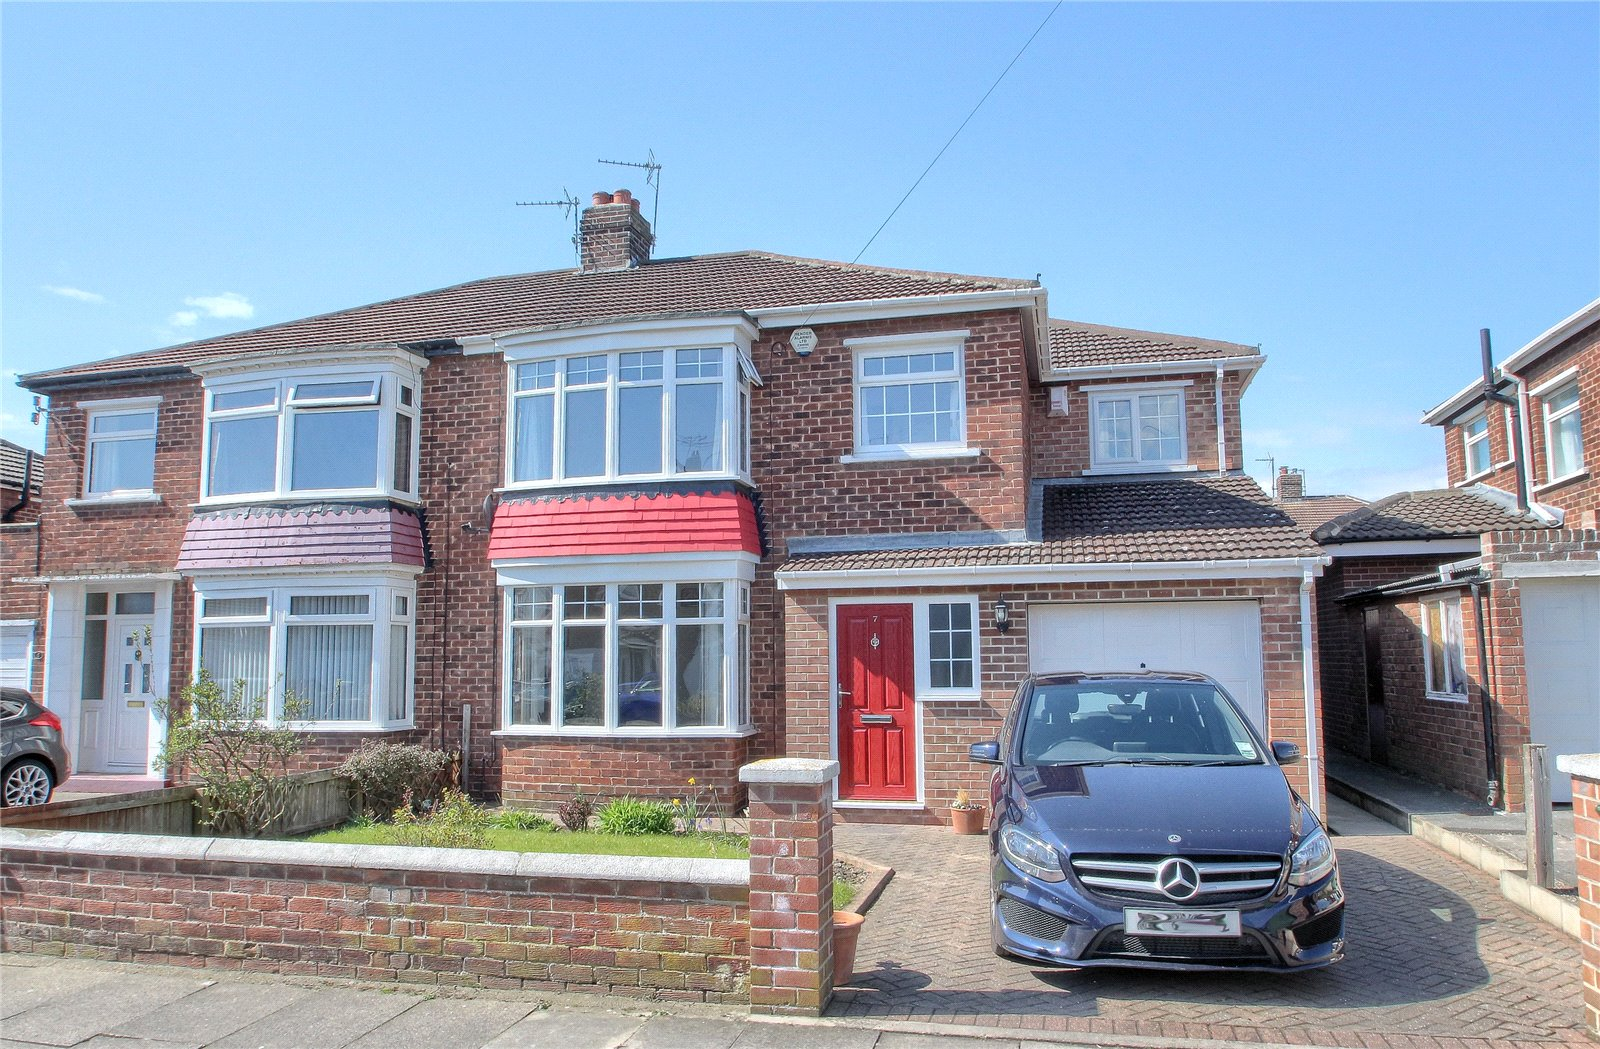 4 bed house for sale in Berberis Grove, Fairfield 1